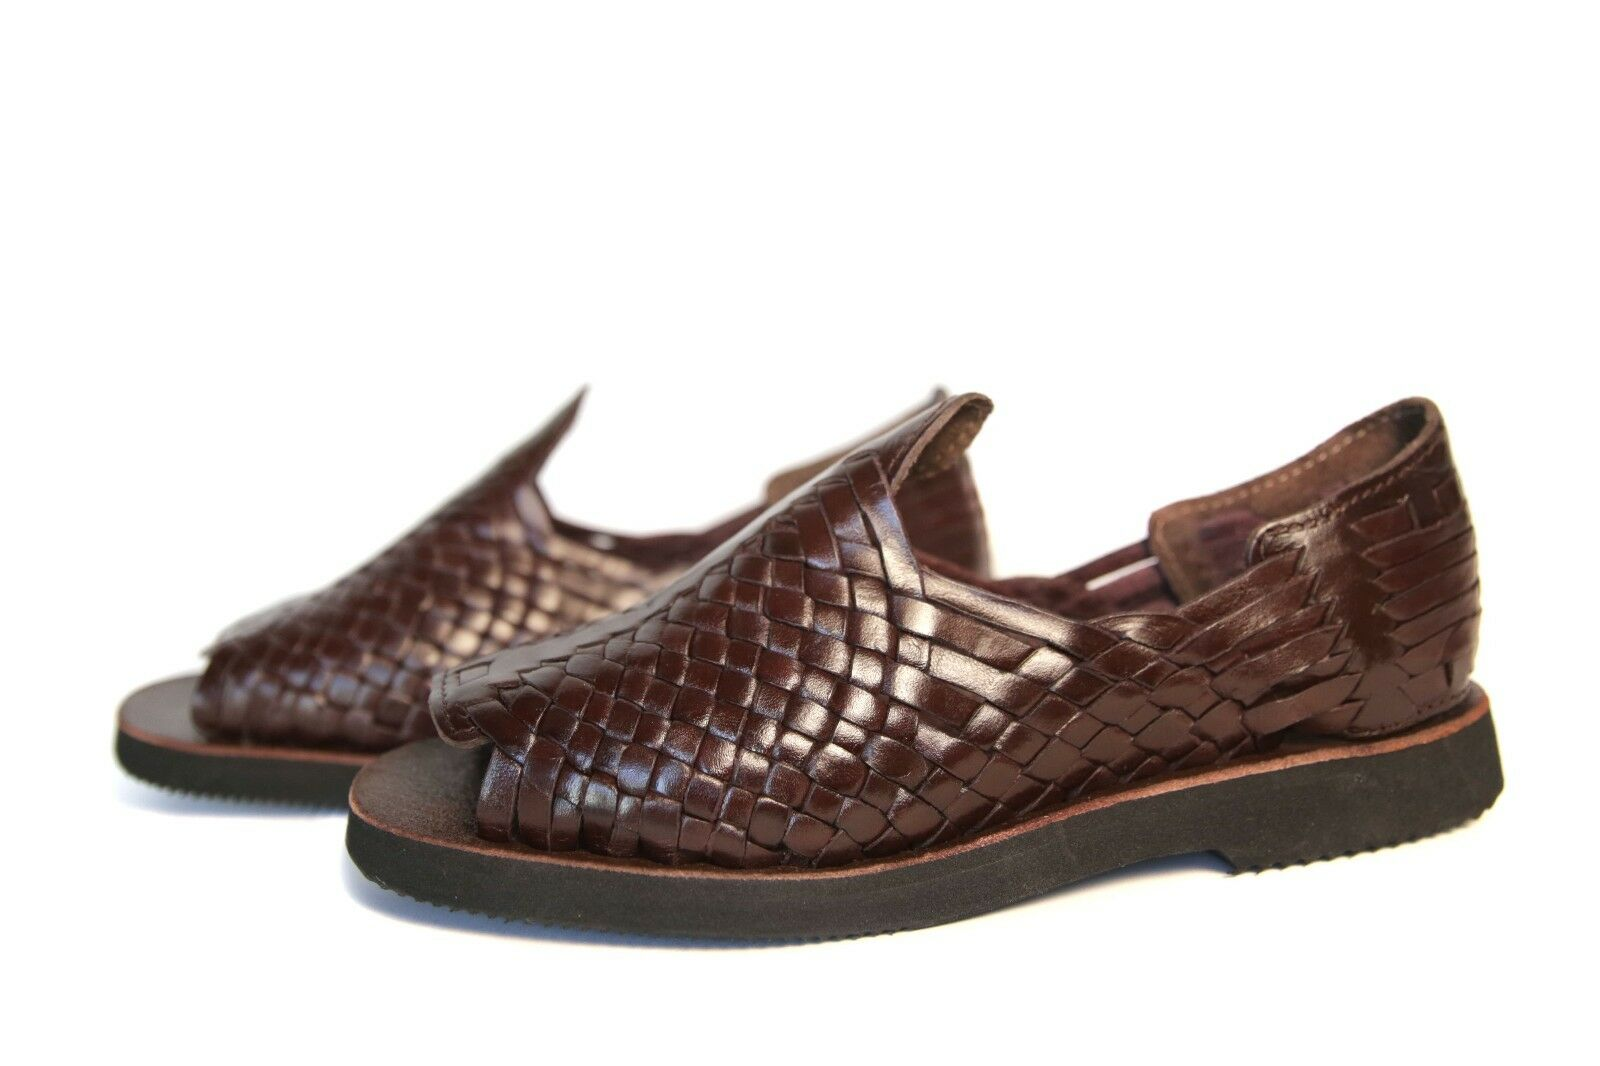 AUTHENTIC MENS HUARACHE SANDALS. MEXICAN SANDALS. OPEN TOE BROWN  68